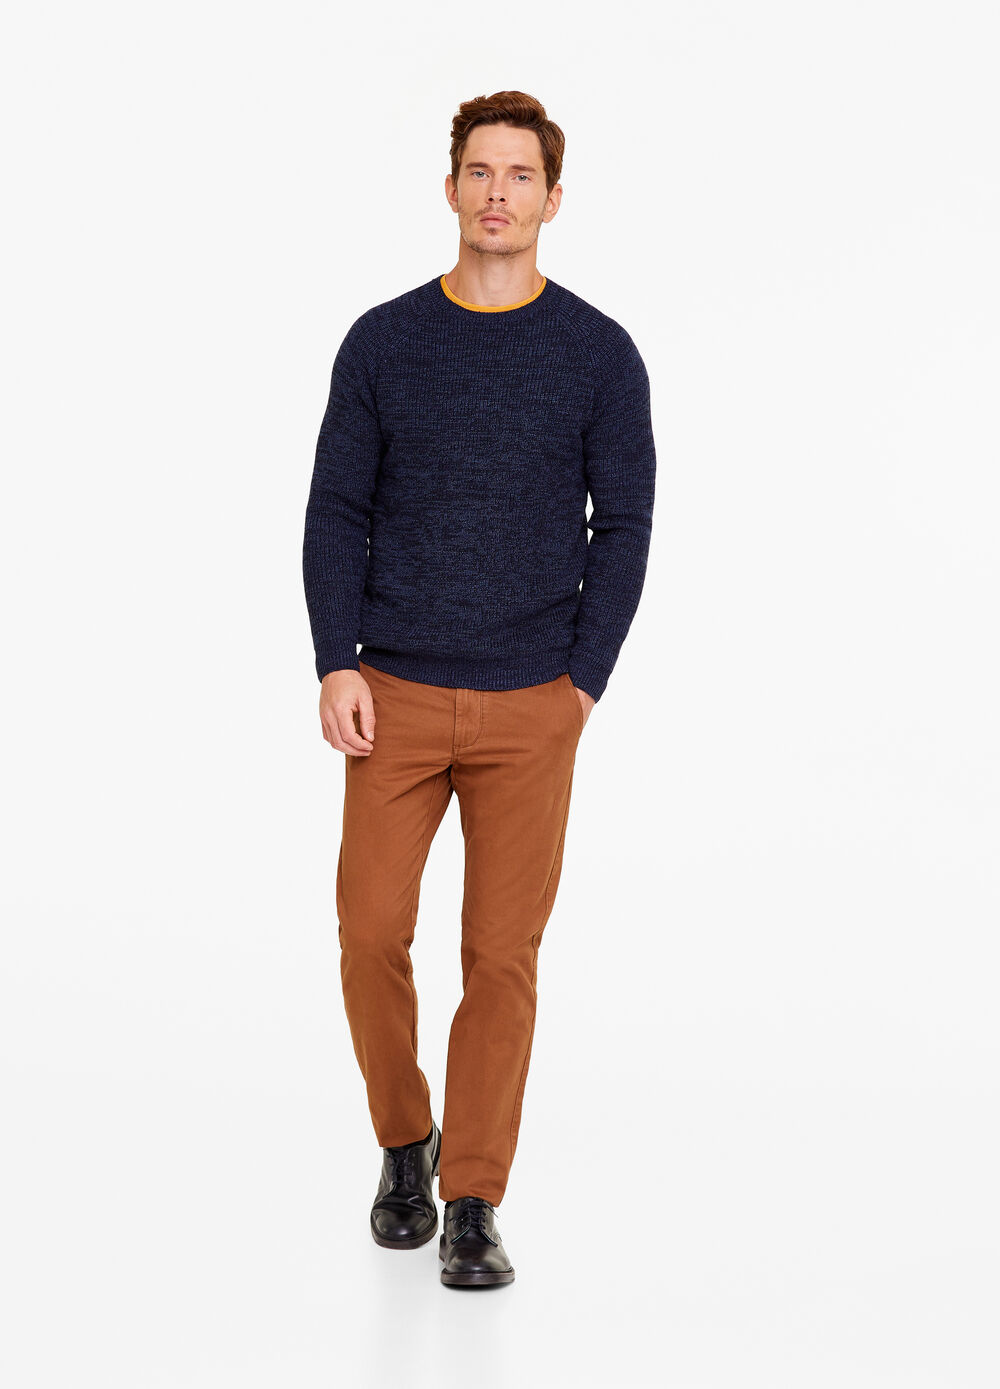 Mélange pullover with round neck